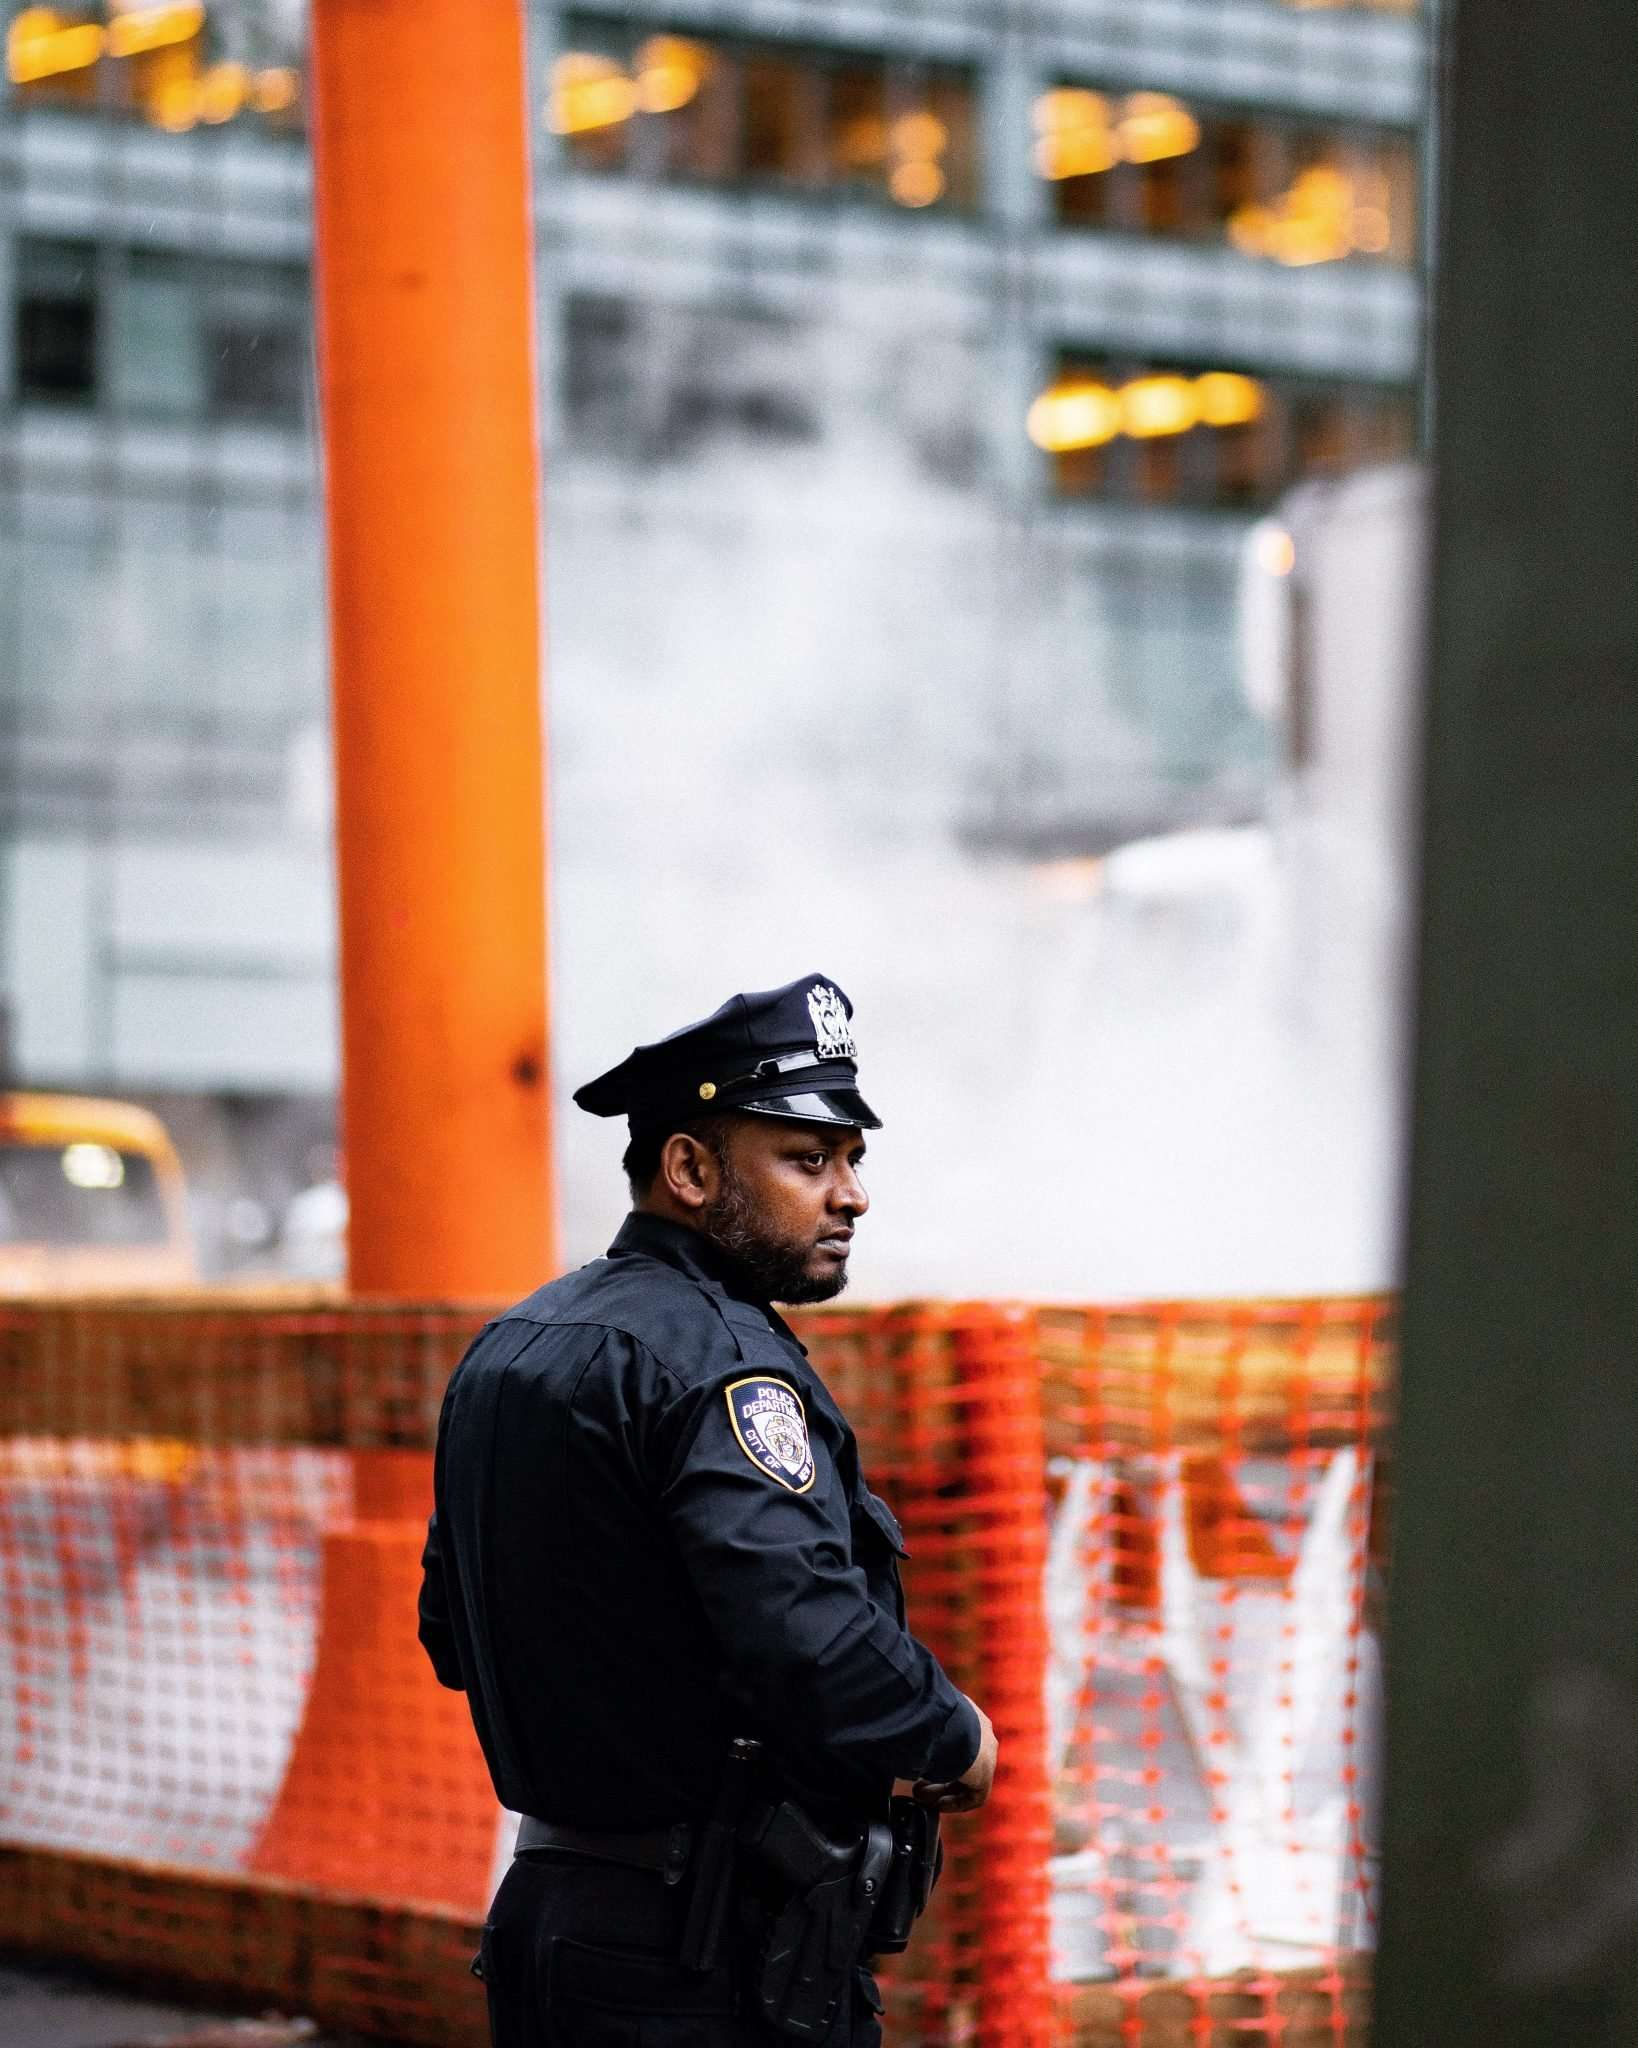 Off-Duty Police Officers Are Employees, Not Independent Contractors